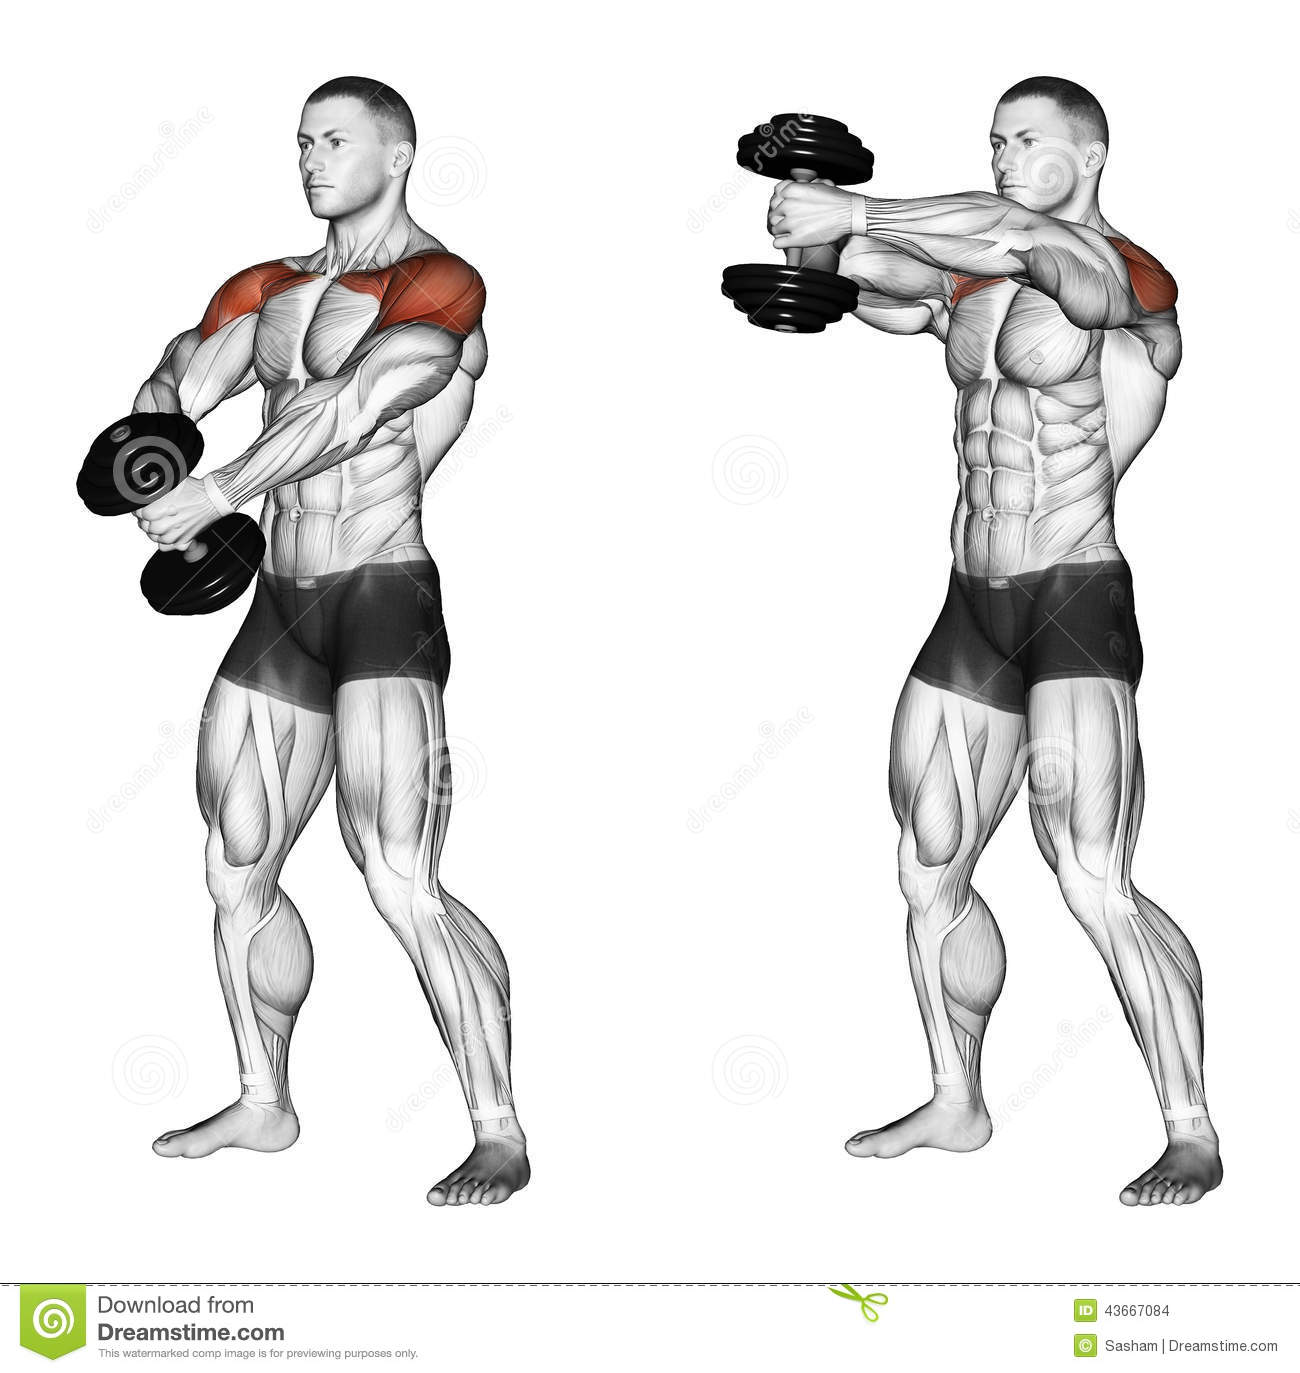 Exercising Ups Of Hands Forward With One Dumbbell